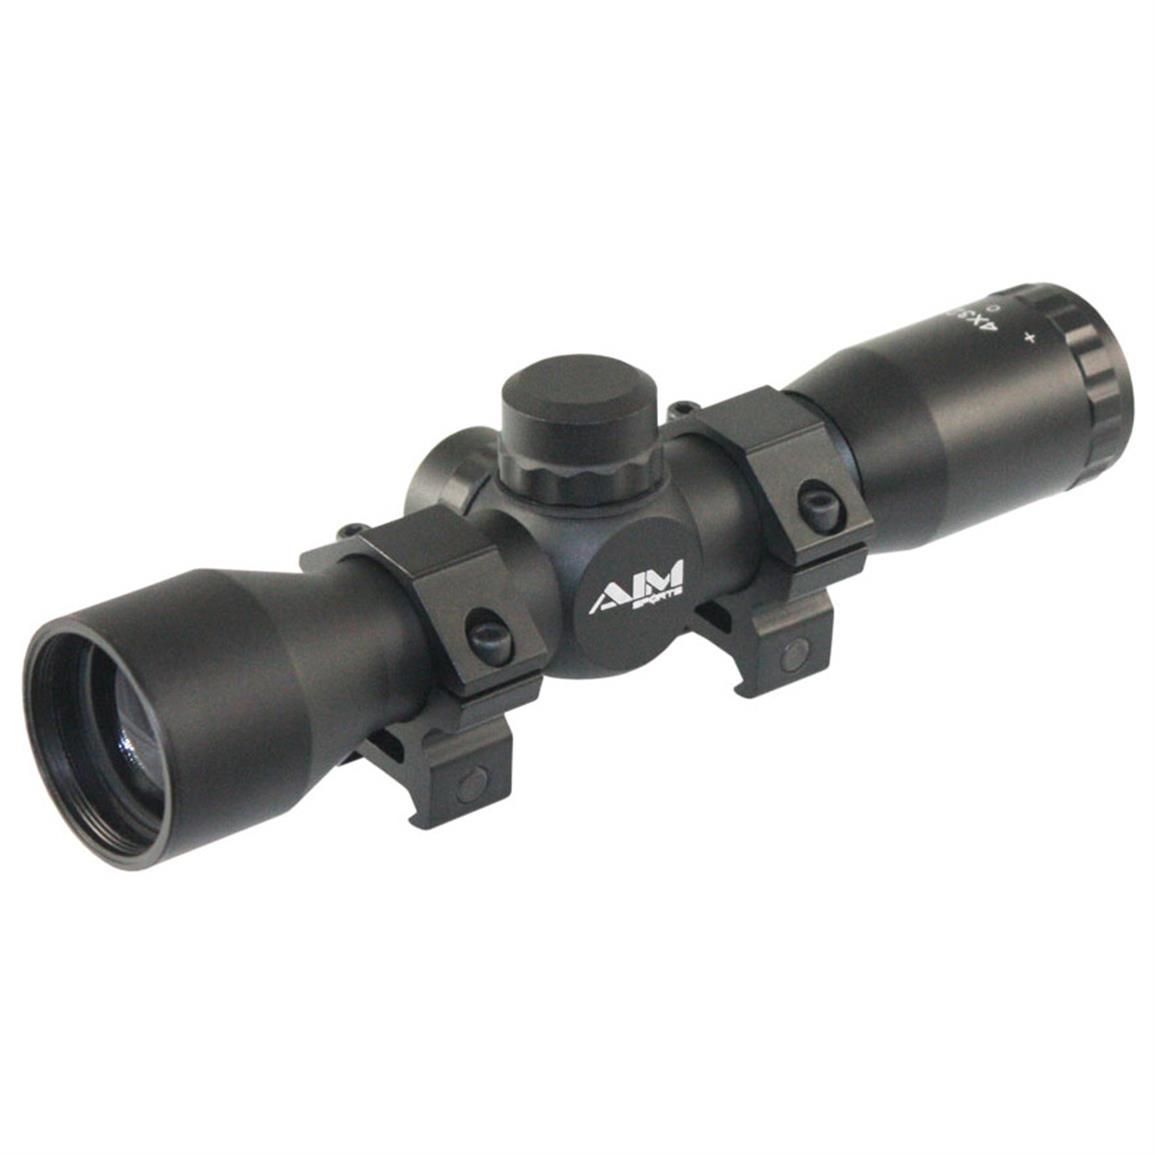 AIM Sports® 4x32mm Compact Scope with Mil-Dot Reticle